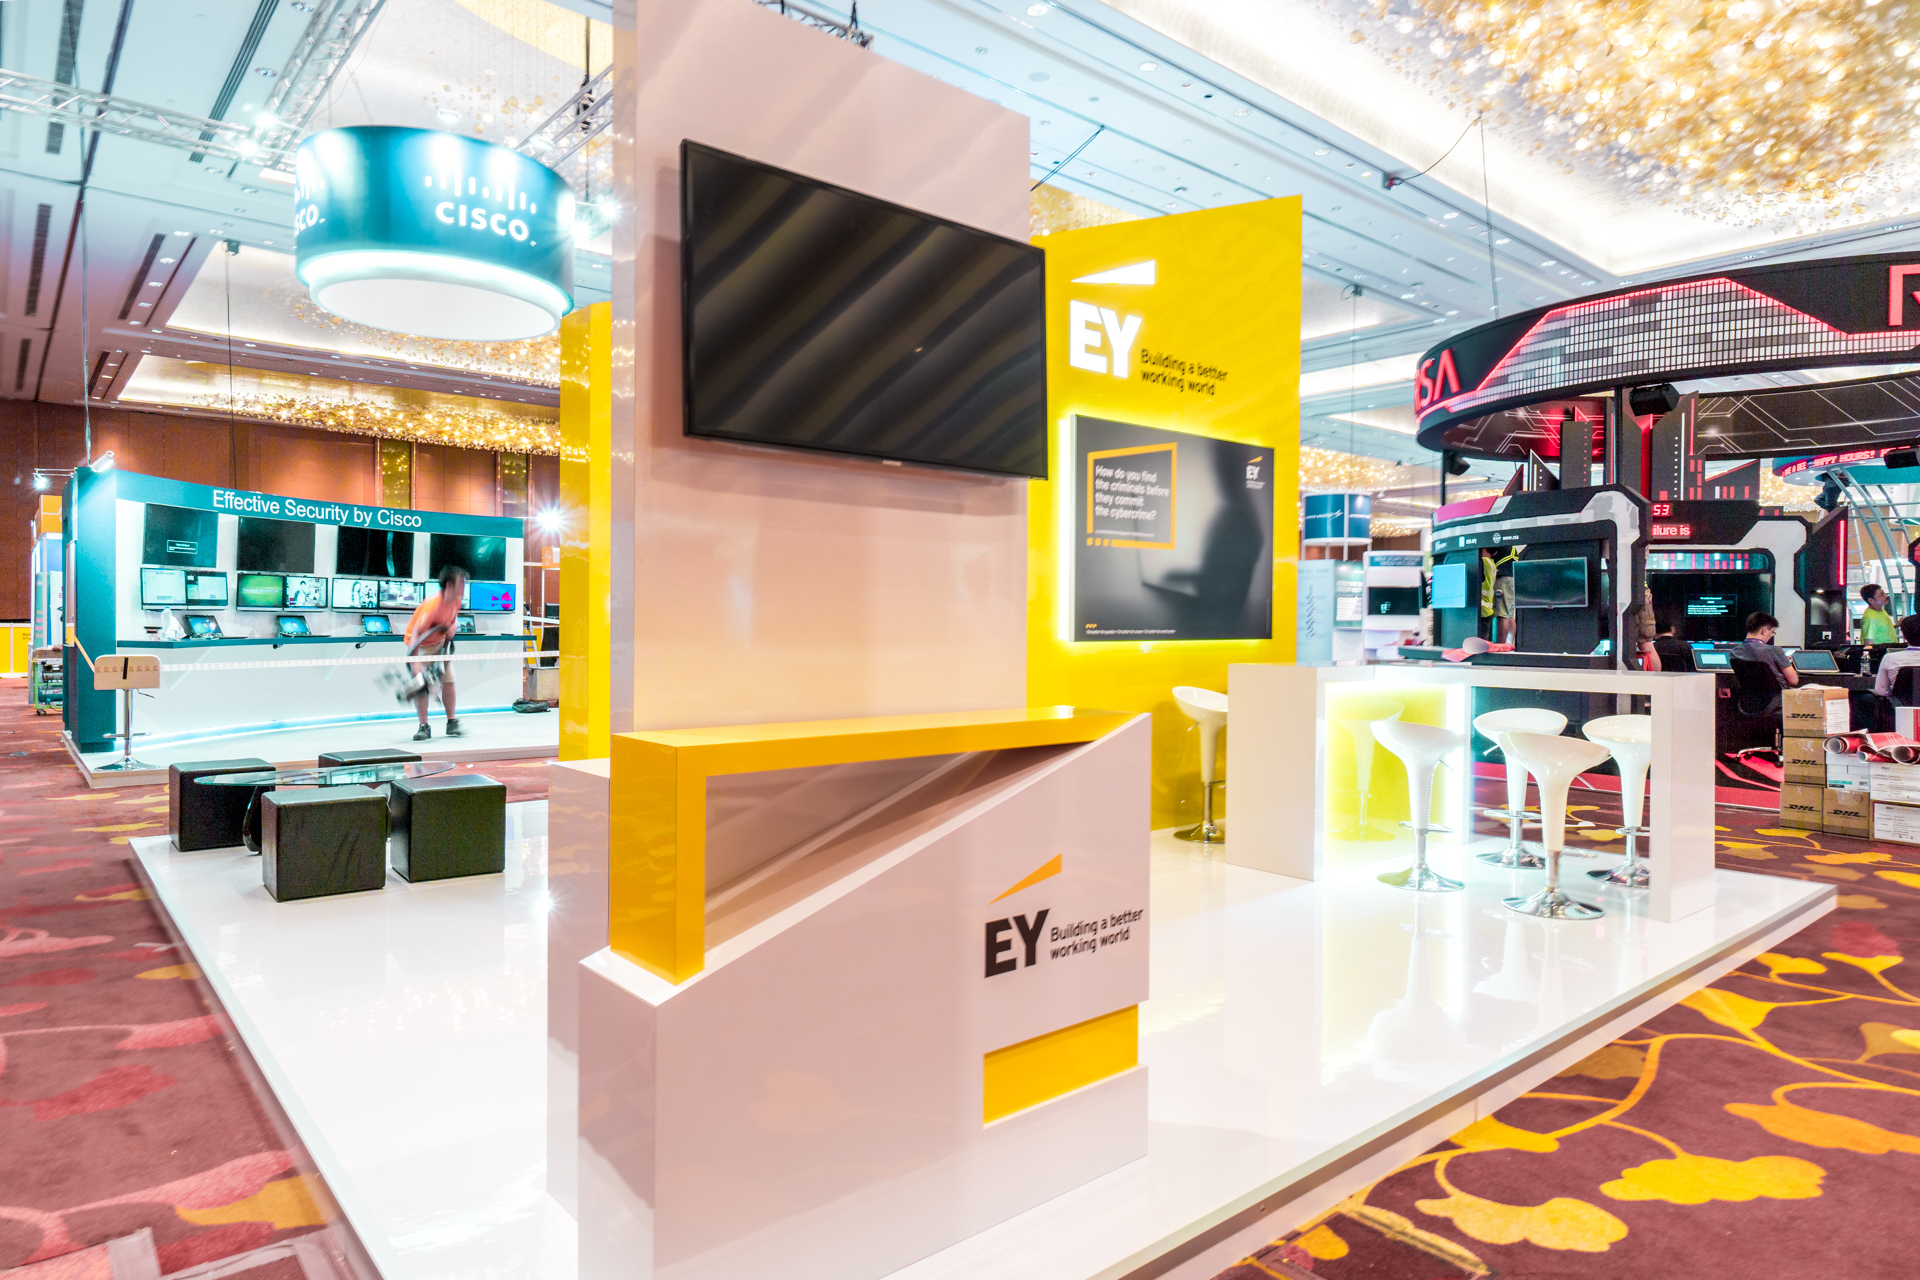 exhibition-stand-design-punktlandung-ey-booth-022